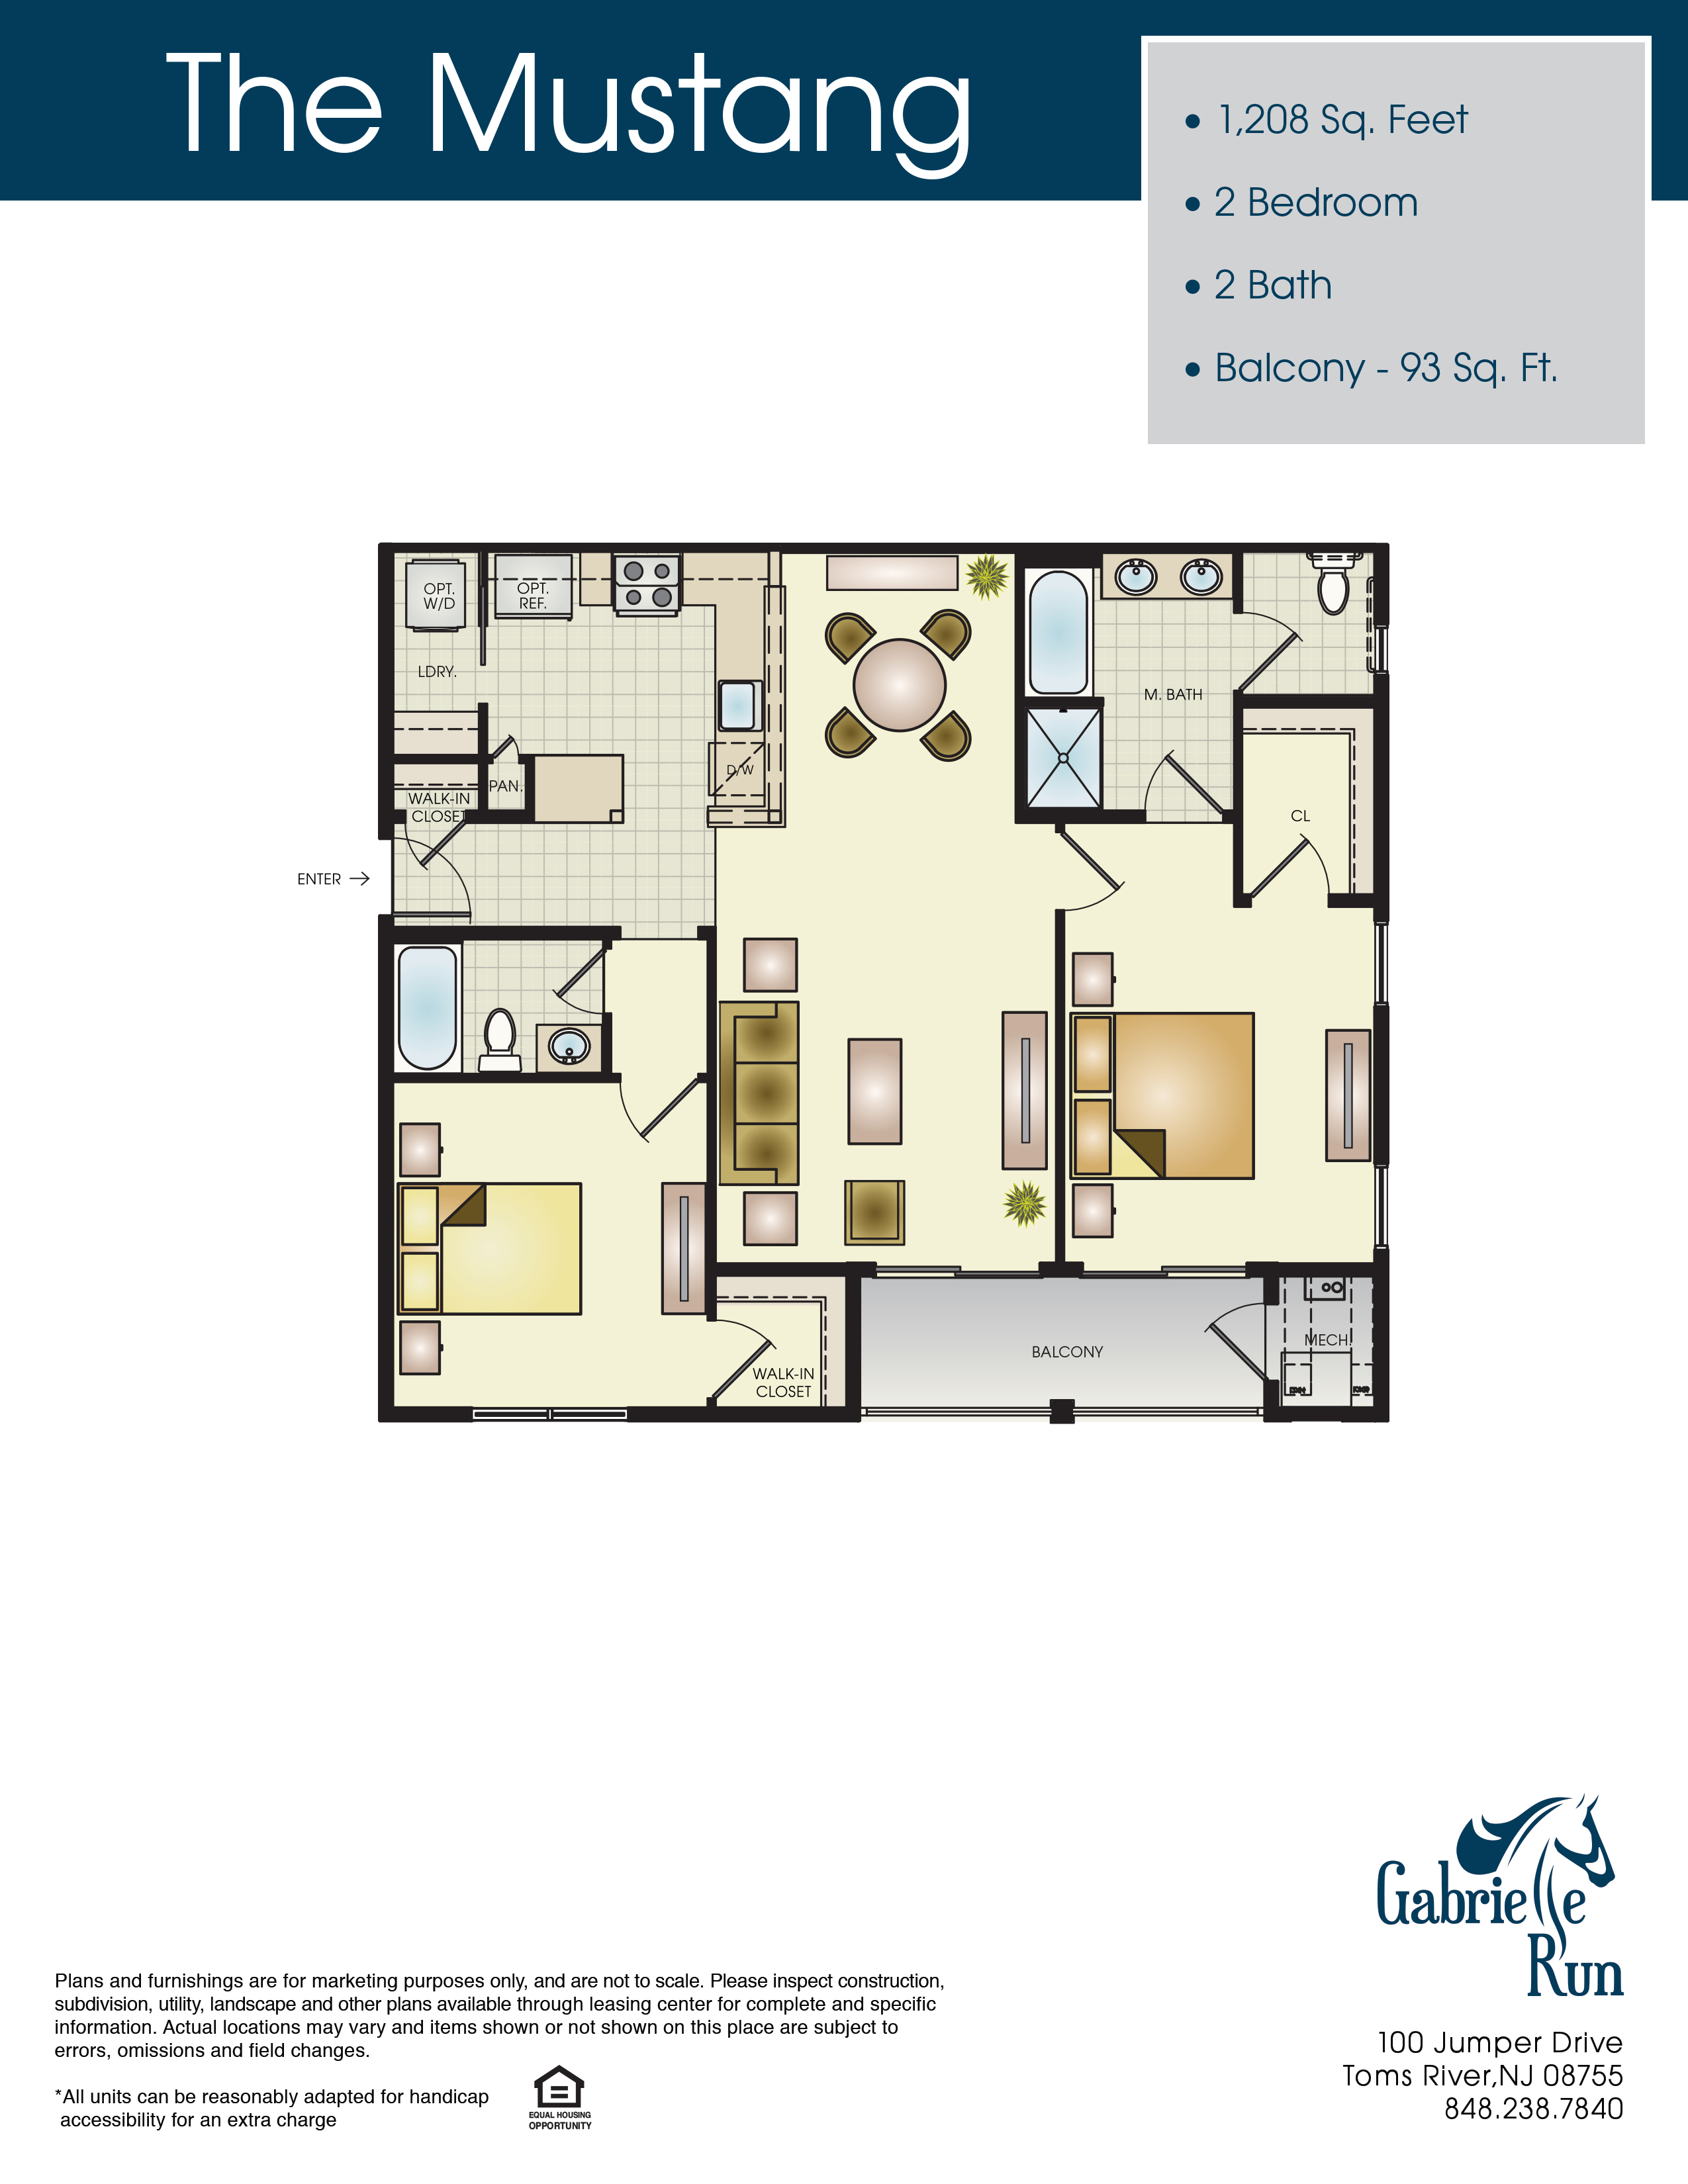 Gabrielle Run Floor Plan Mustang